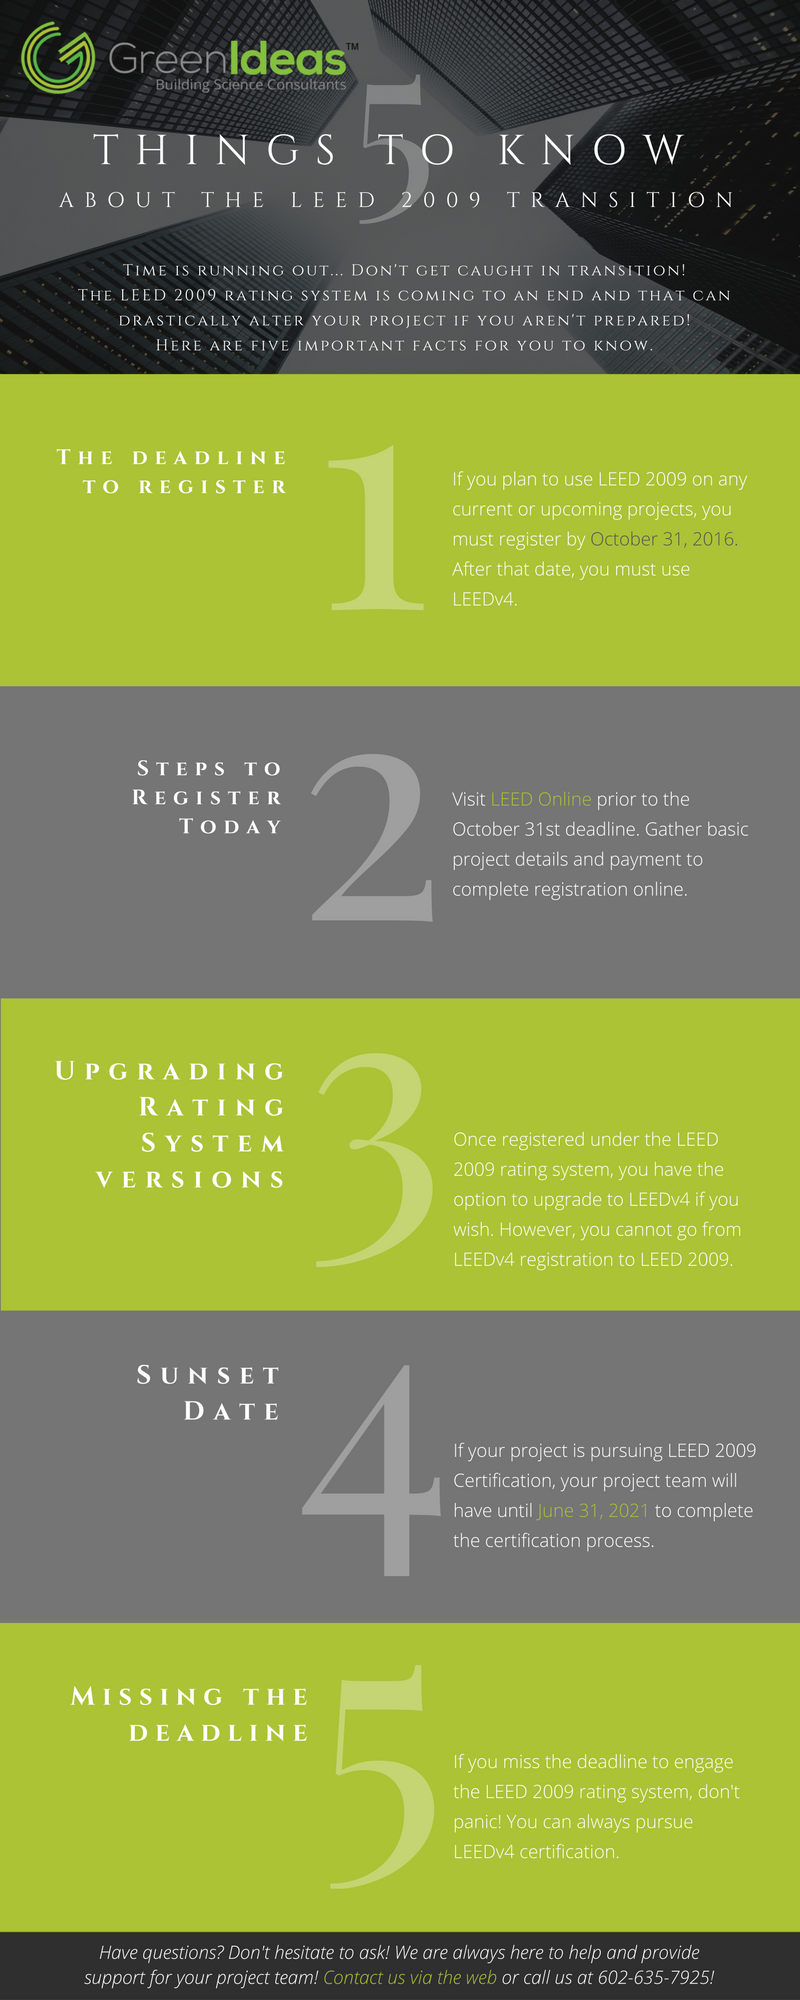 green-ideas_leed-2009-transition_infographic